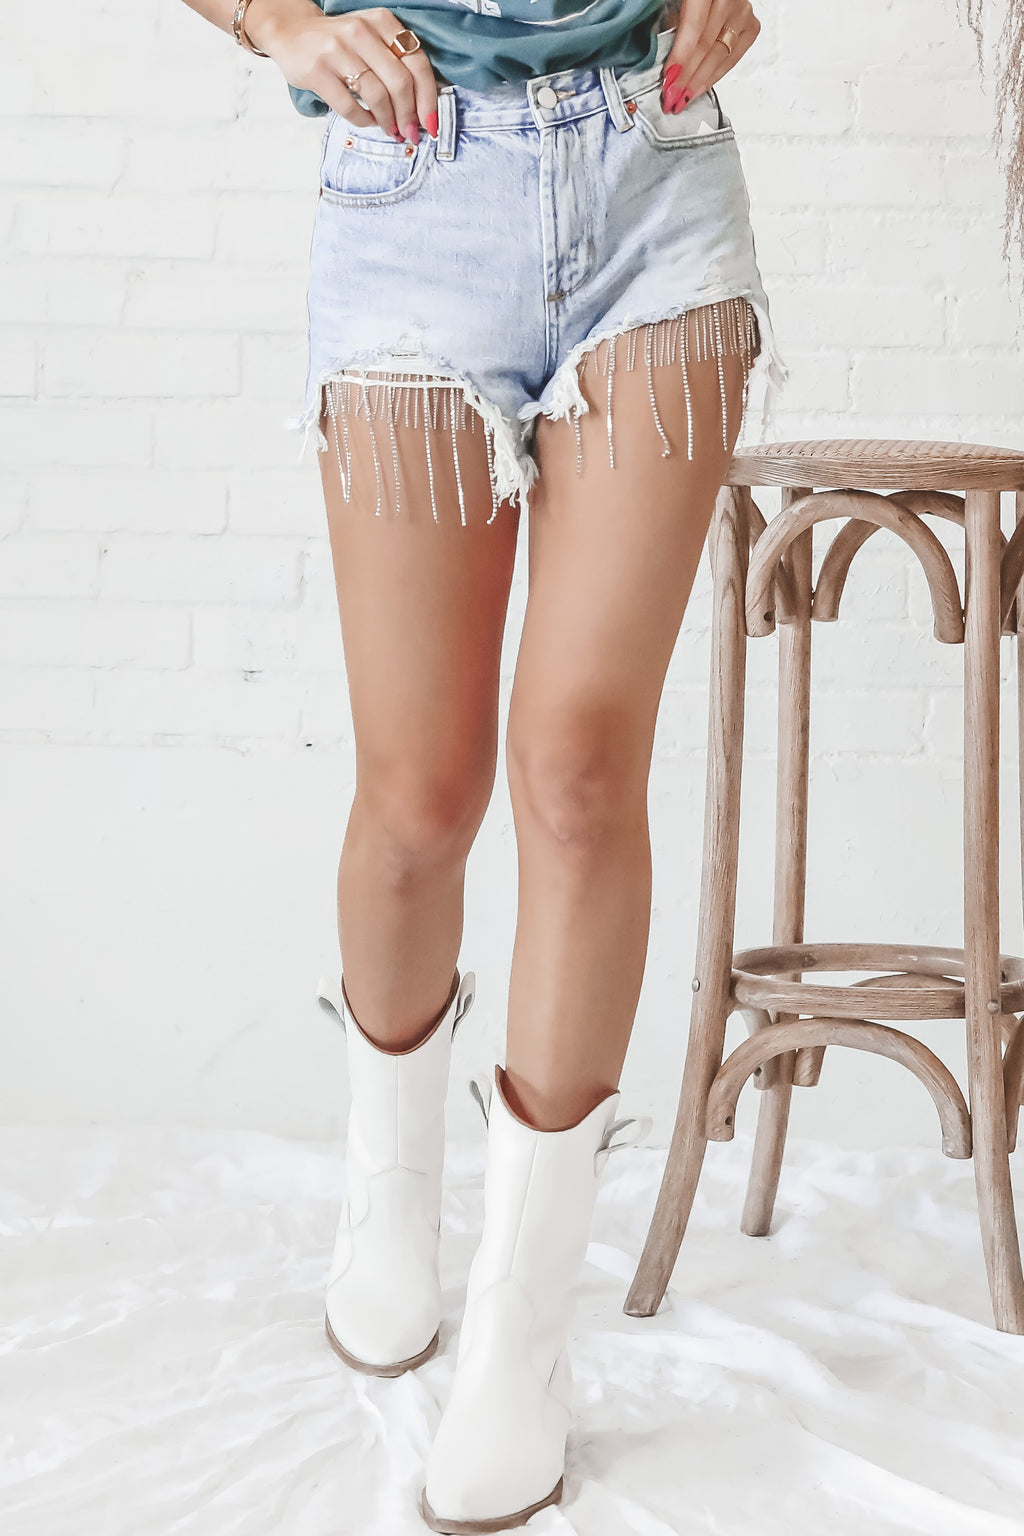 Angel Eyes Denim Chain Cut Off Shorts